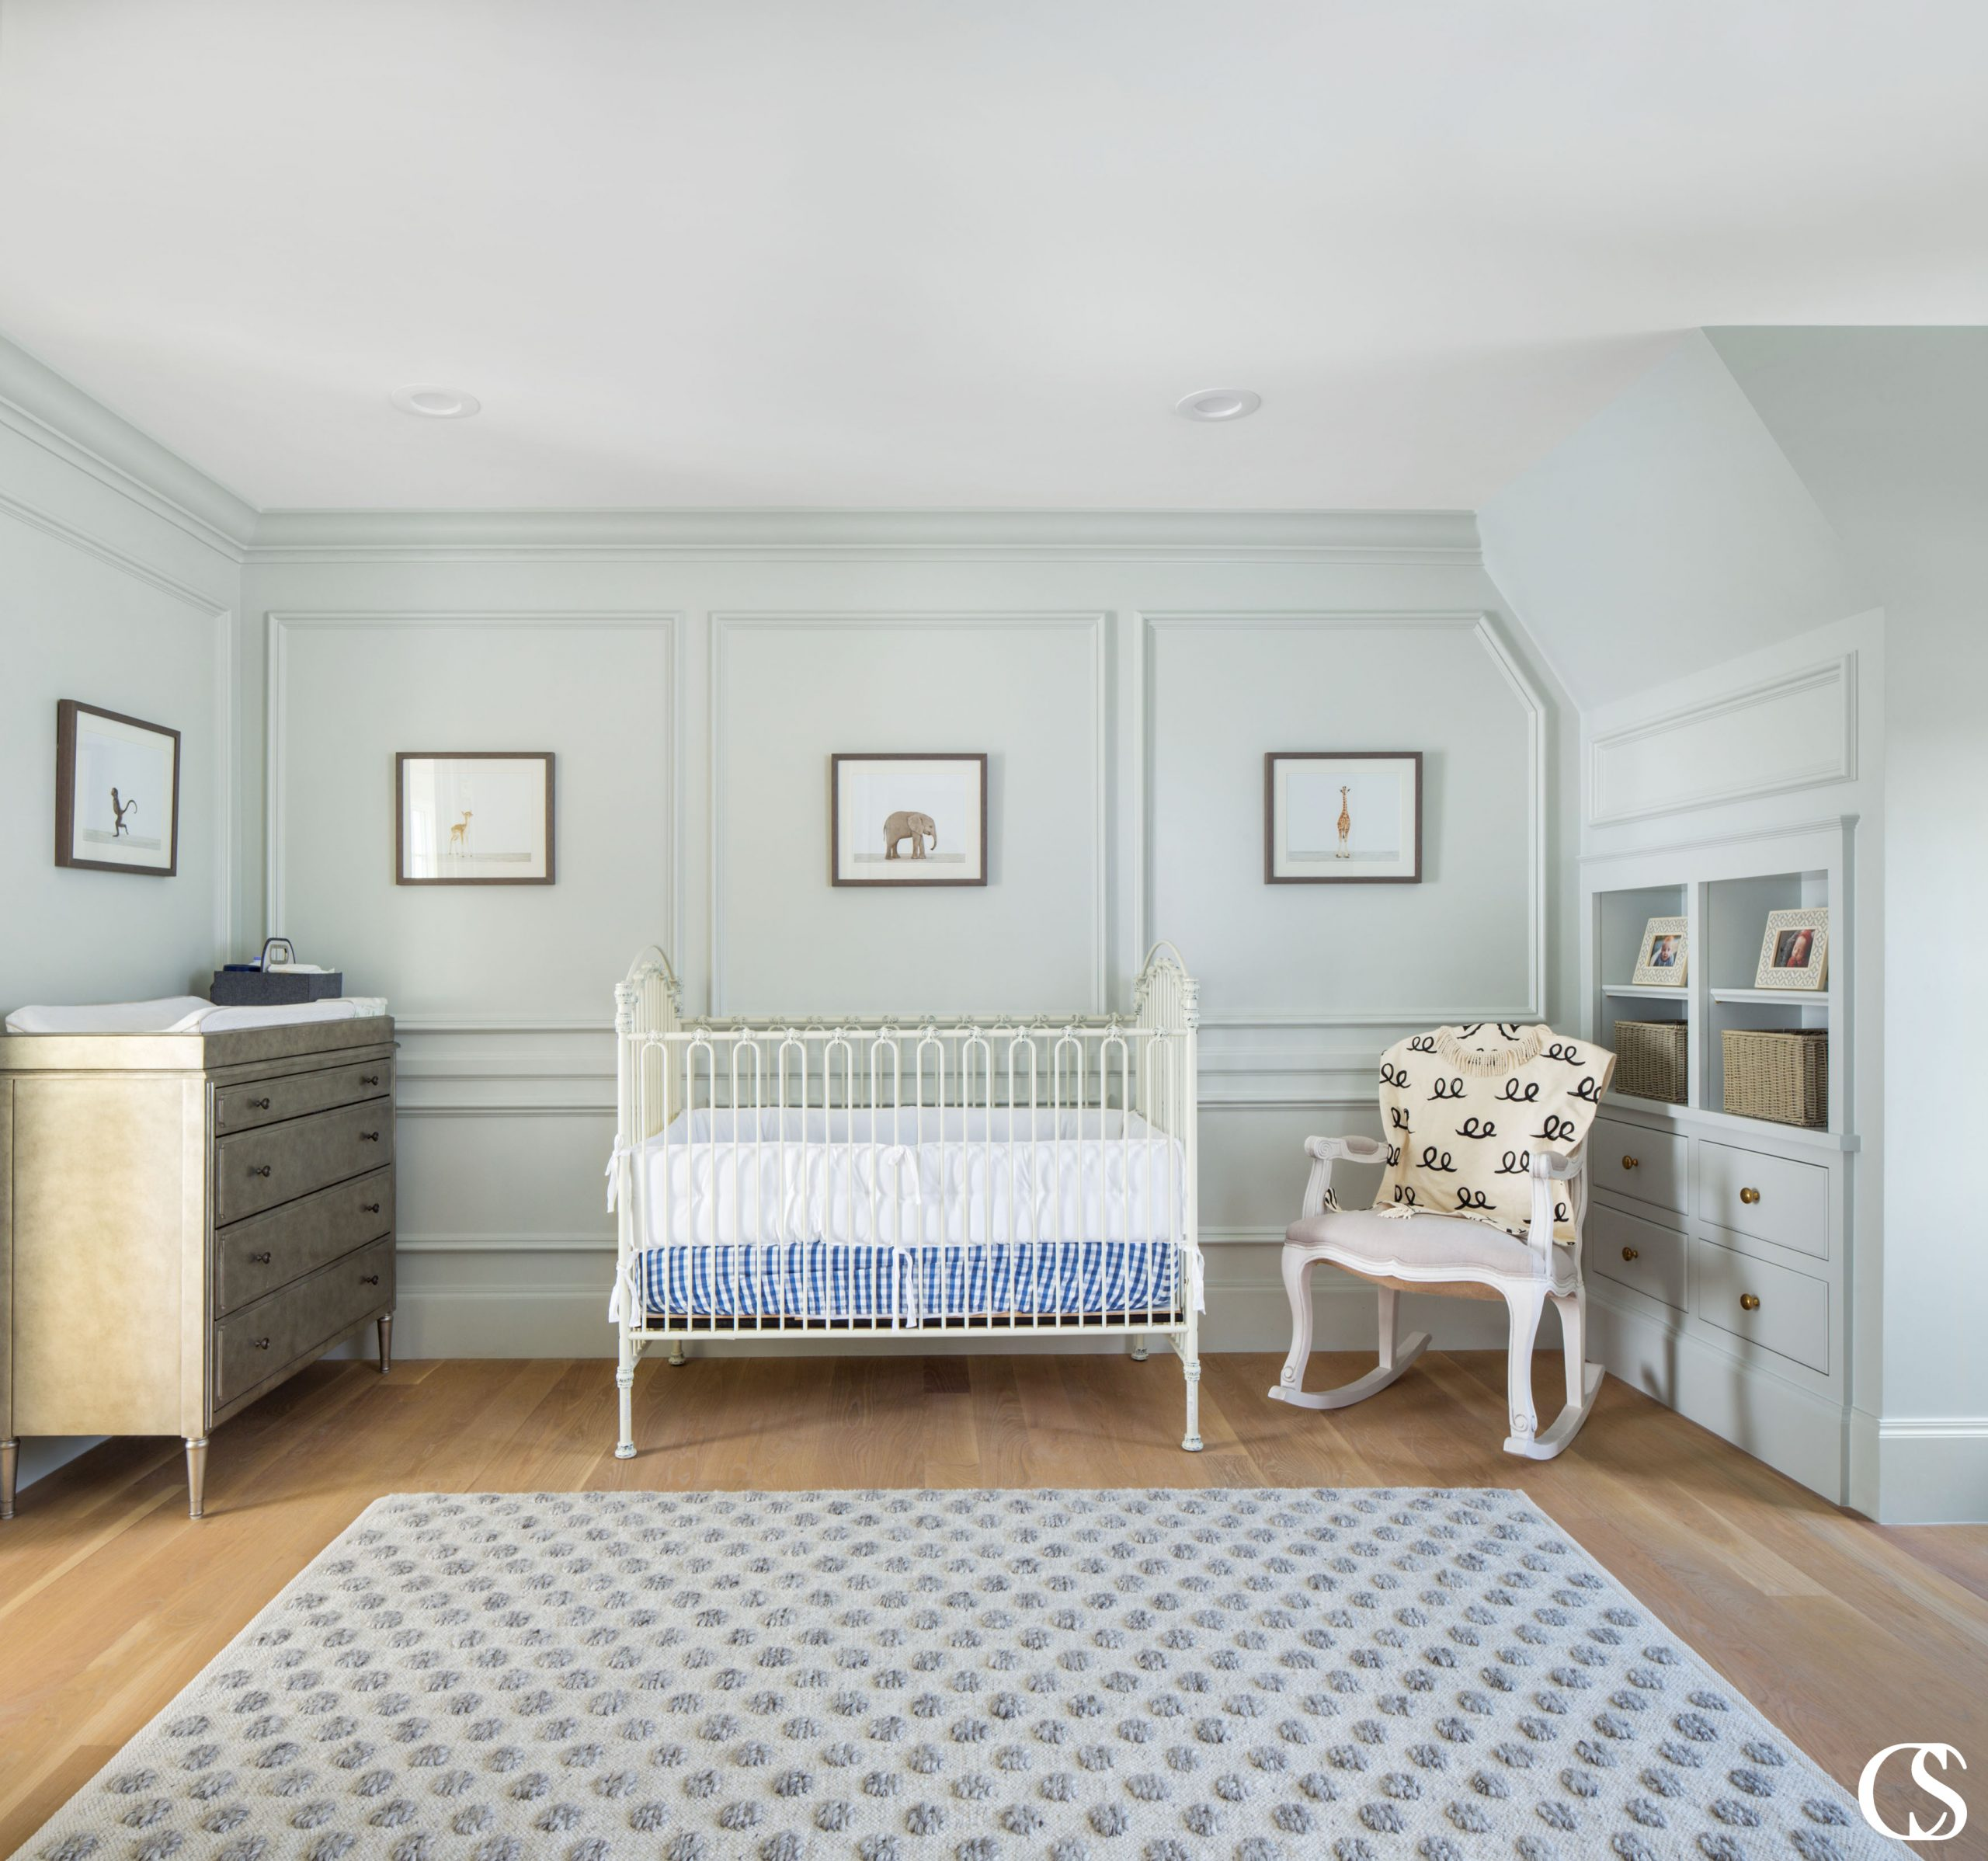 Every corner of this sweet nursery is enhanced by built in design. From decorative molding to built in cabinets and shelves, it all adds character and interest to the space.